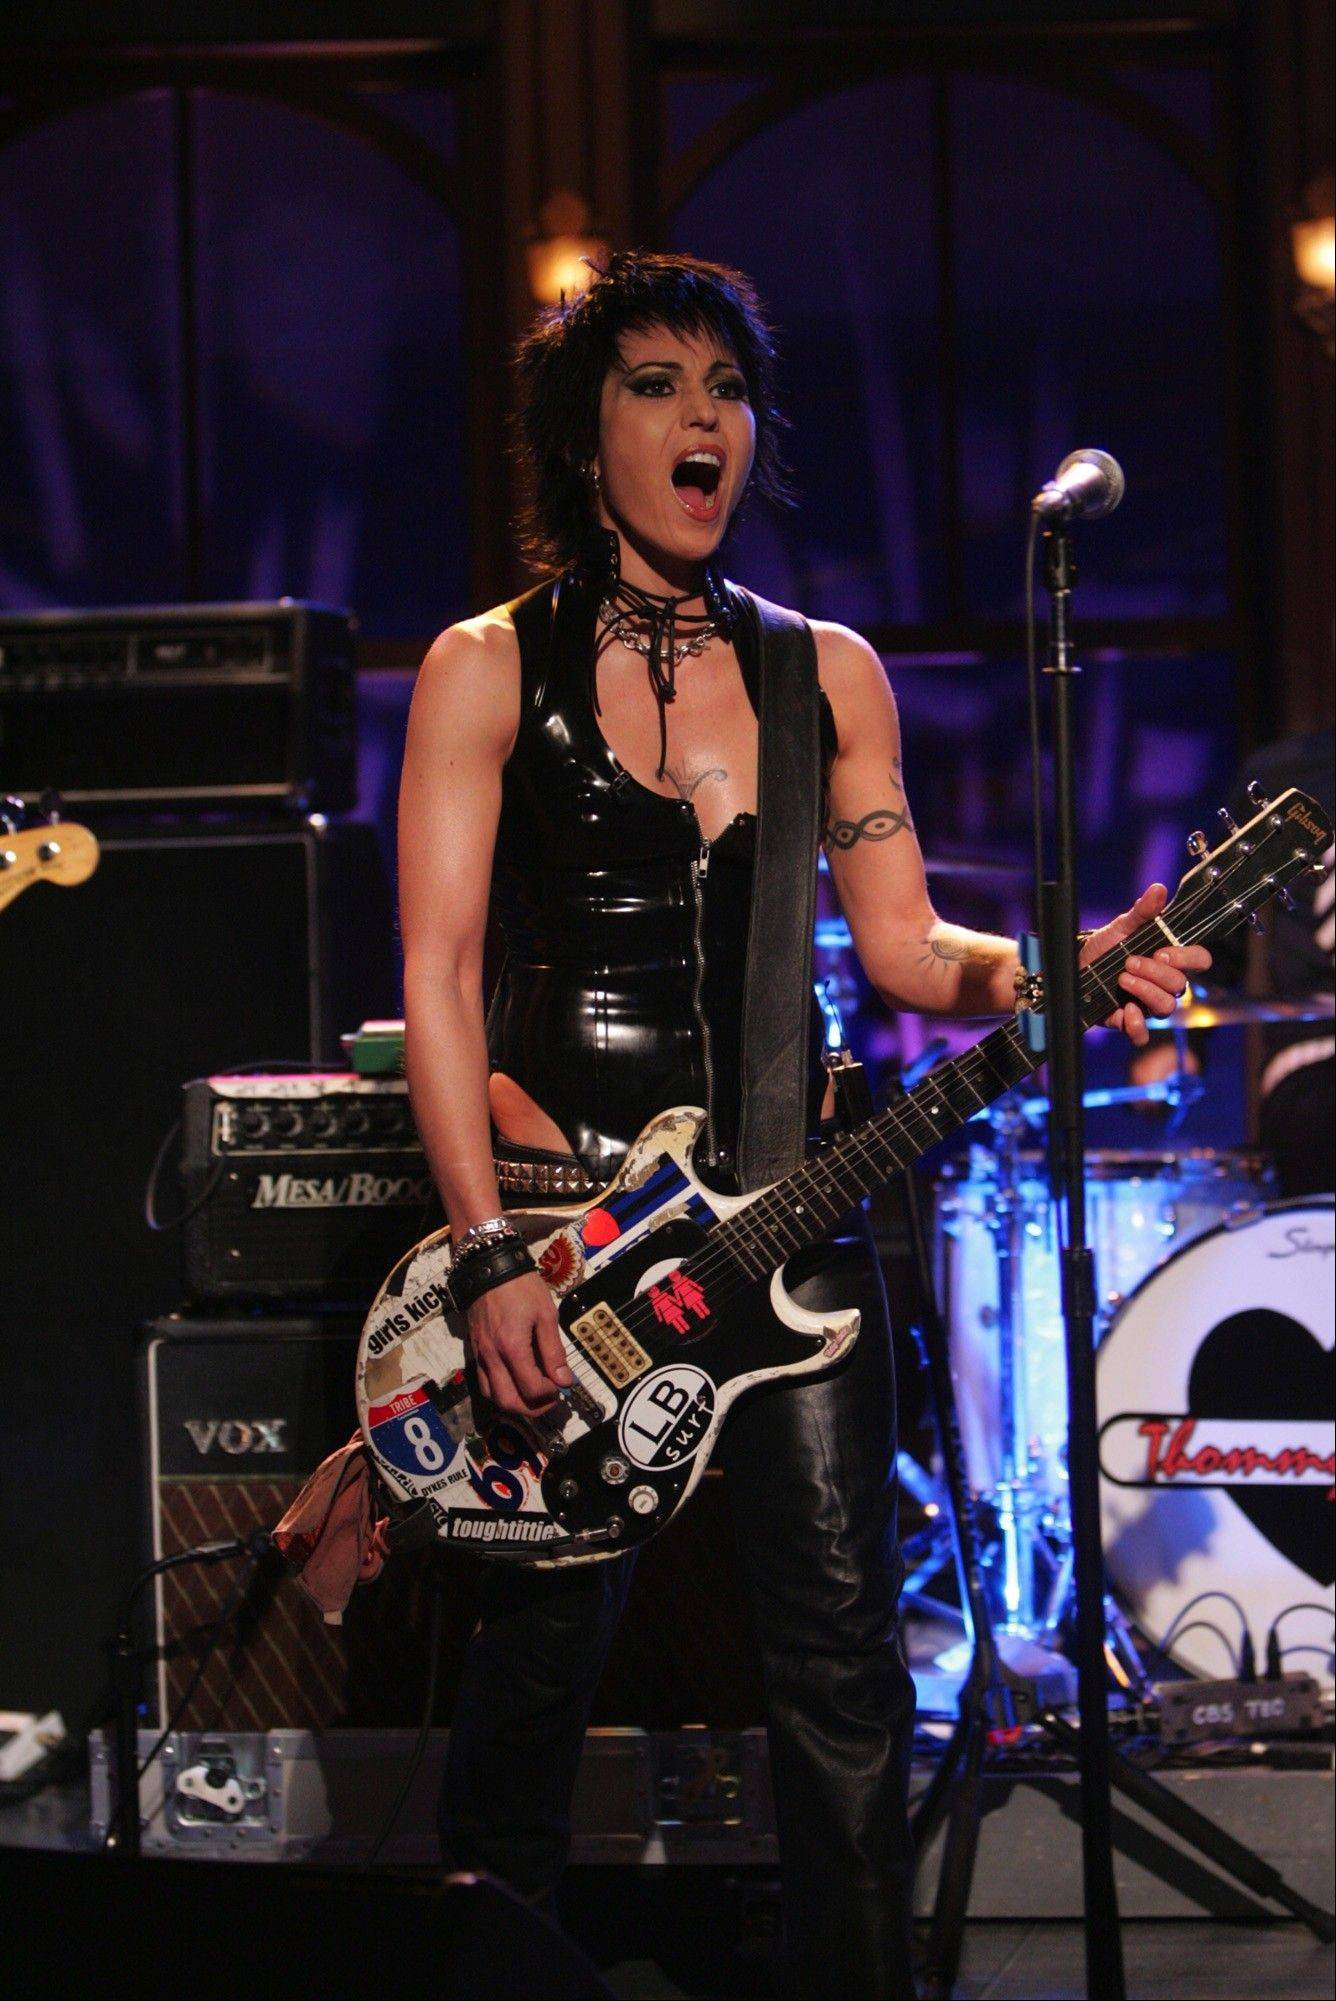 Joan Jett and The Blackhearts will perform at Festival Park in Elgin.